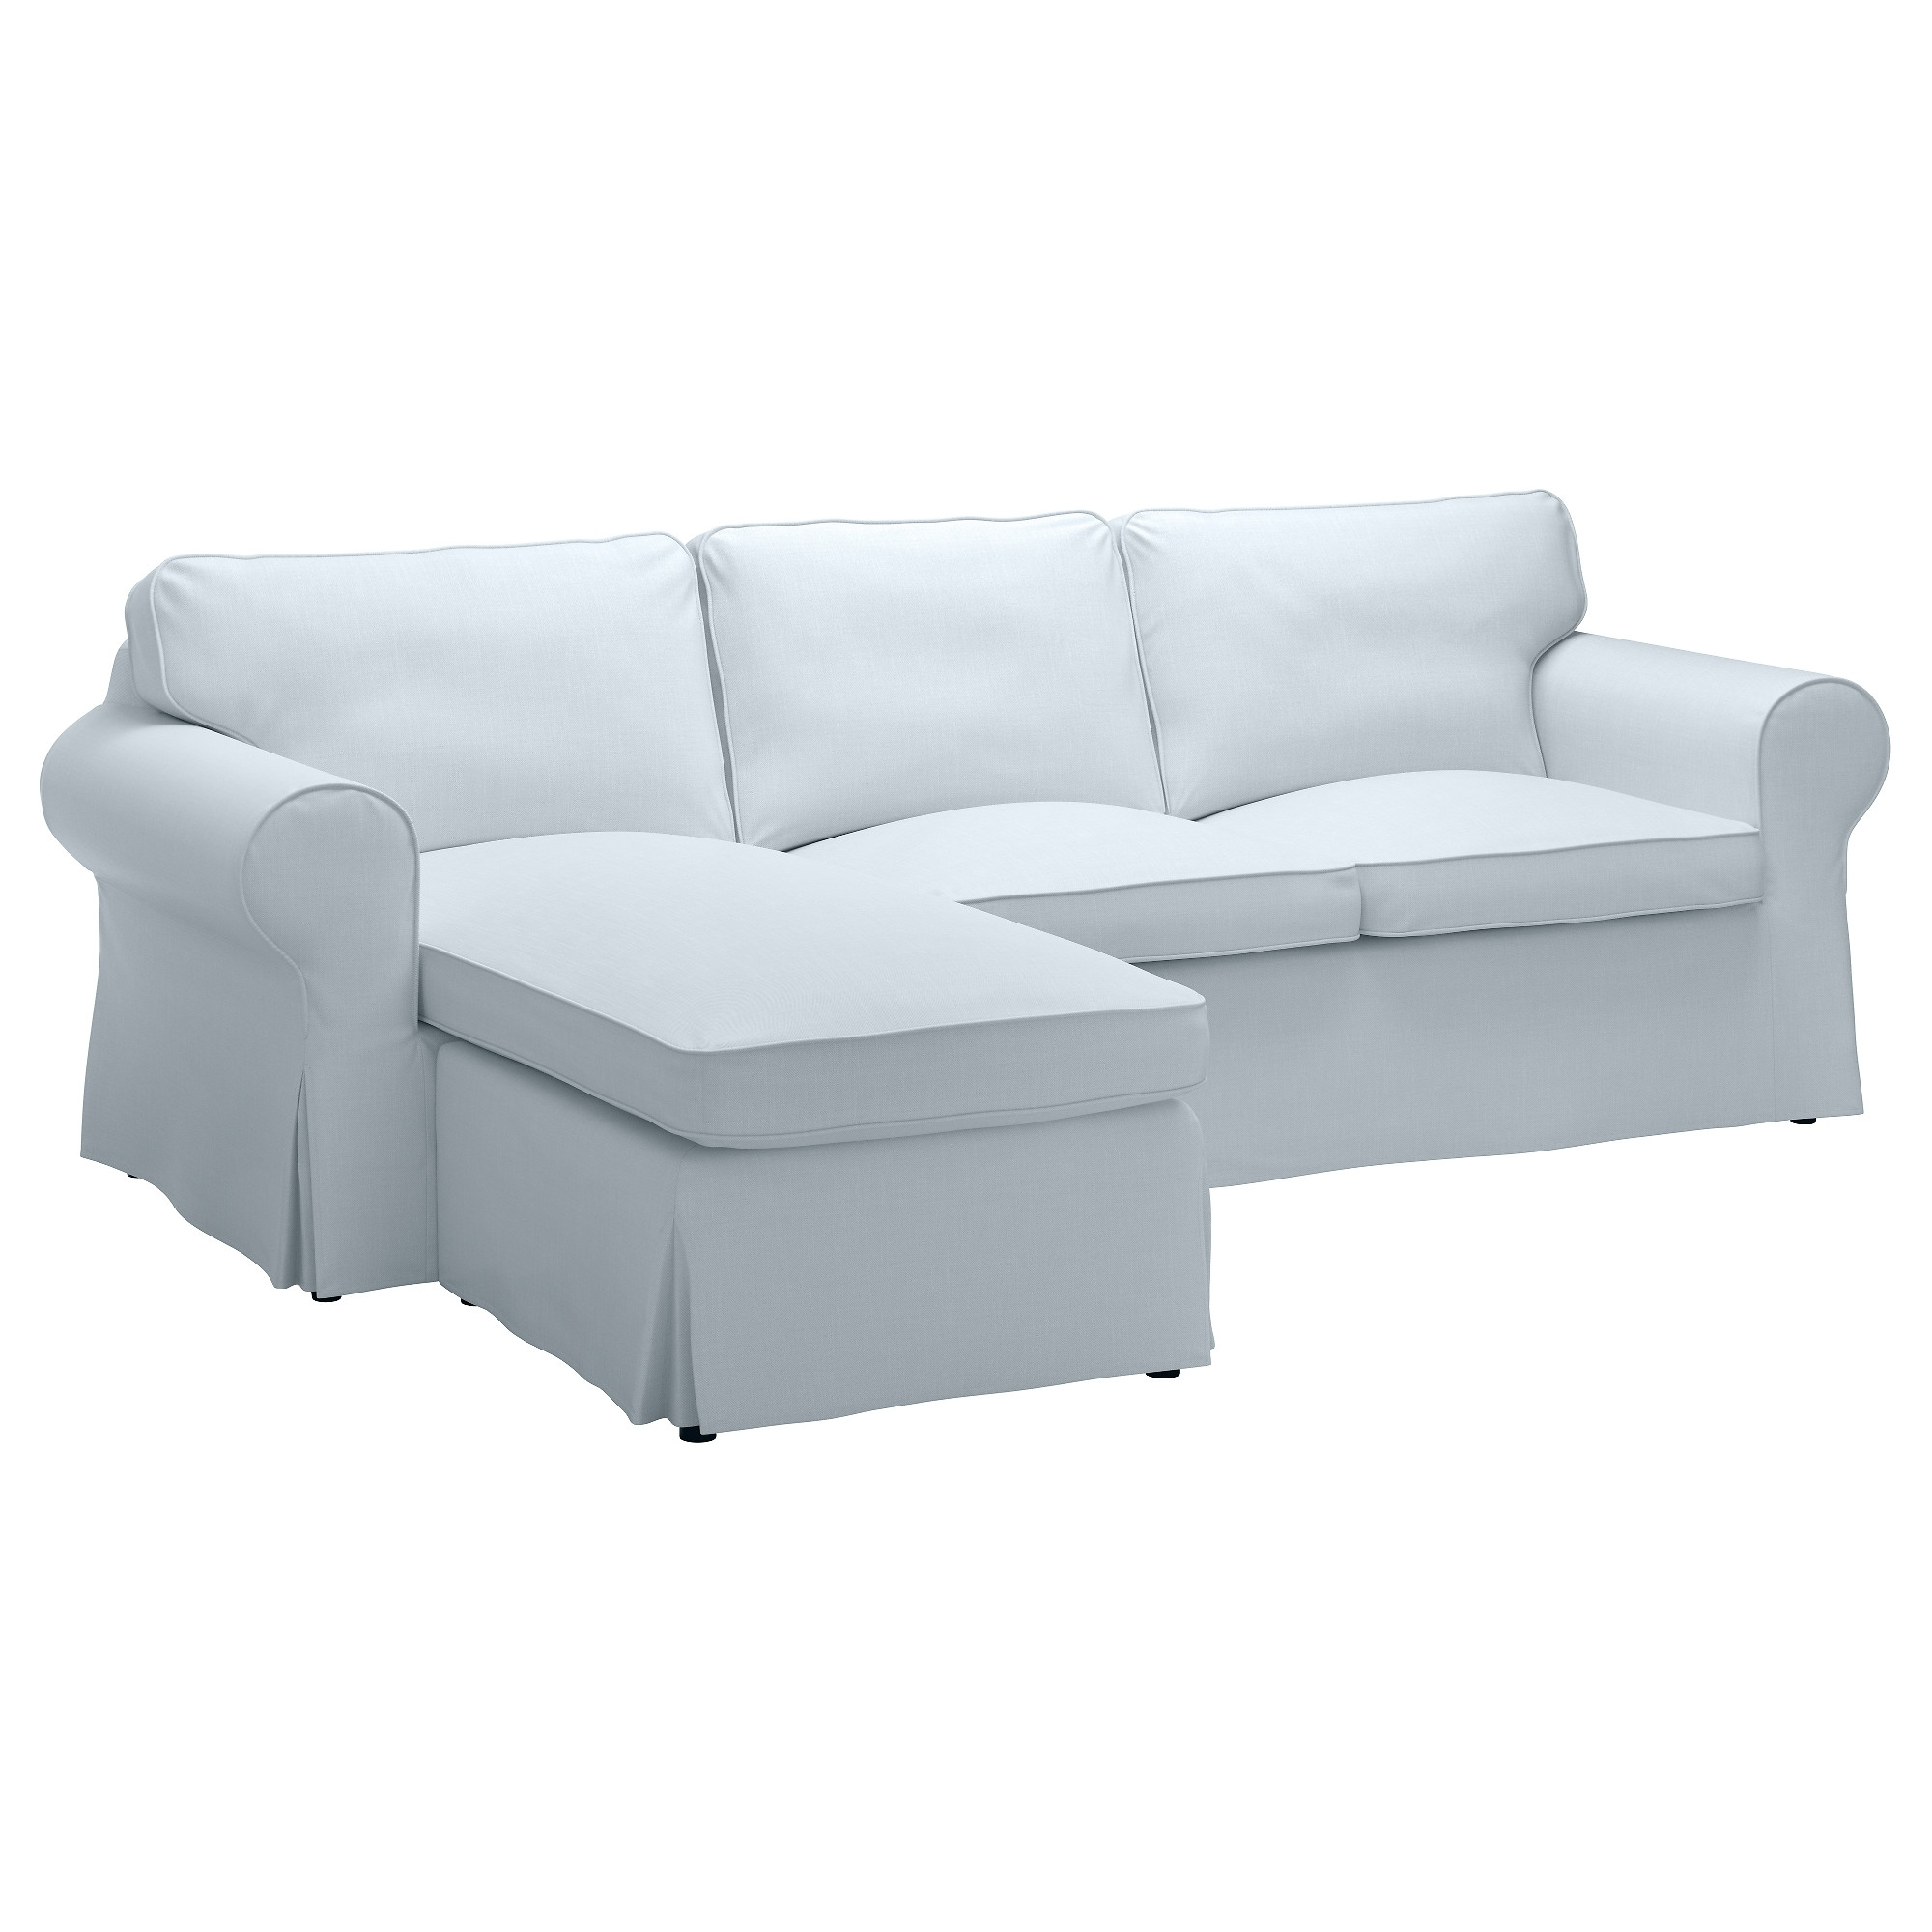 Ektorp Sofa – With Chaise/nordvalla Light Blue – Ikea Regarding Widely Used Ikea Sofa Beds With Chaise (View 4 of 15)